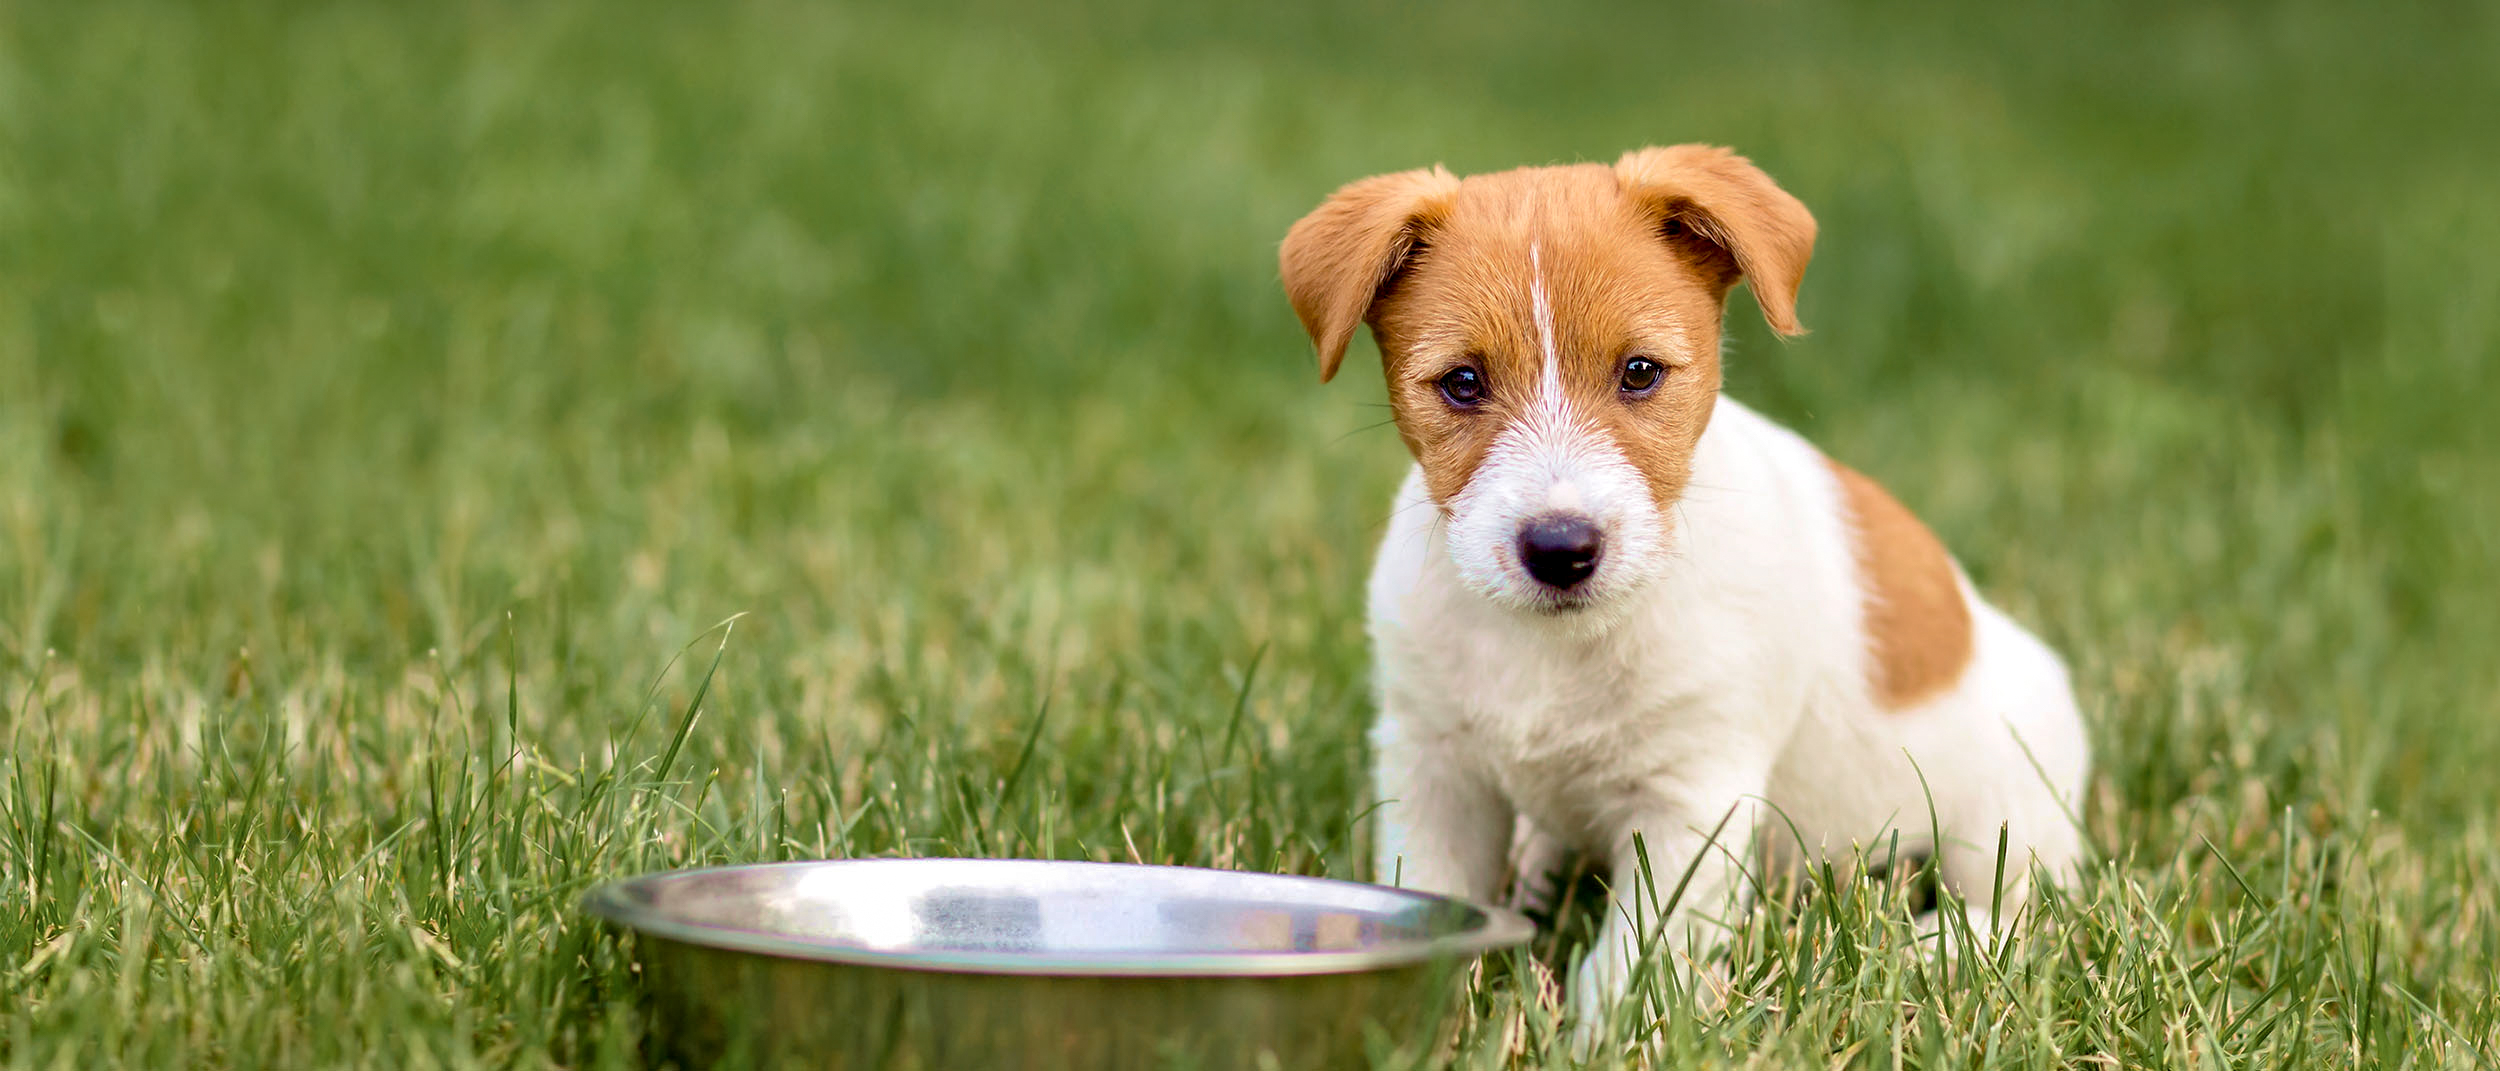 Puppy Jack Russell sitting outside in grass by a large silver bowl.